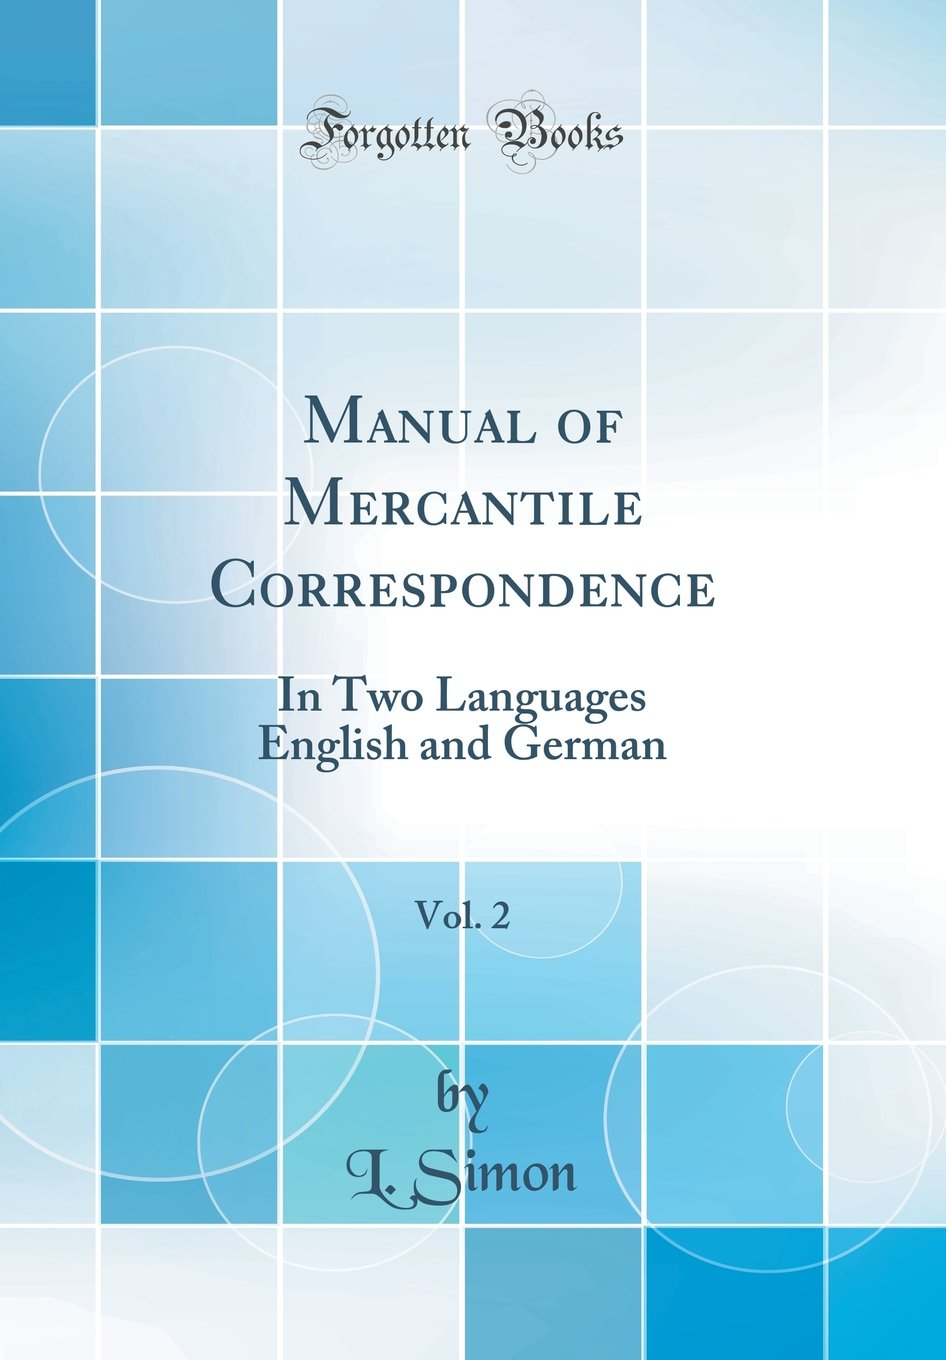 Manual of Mercantile Correspondence, Vol. 2: In Two Languages English and  German (Classic Reprint): L. Simon: 9780266165712: Amazon.com: Books